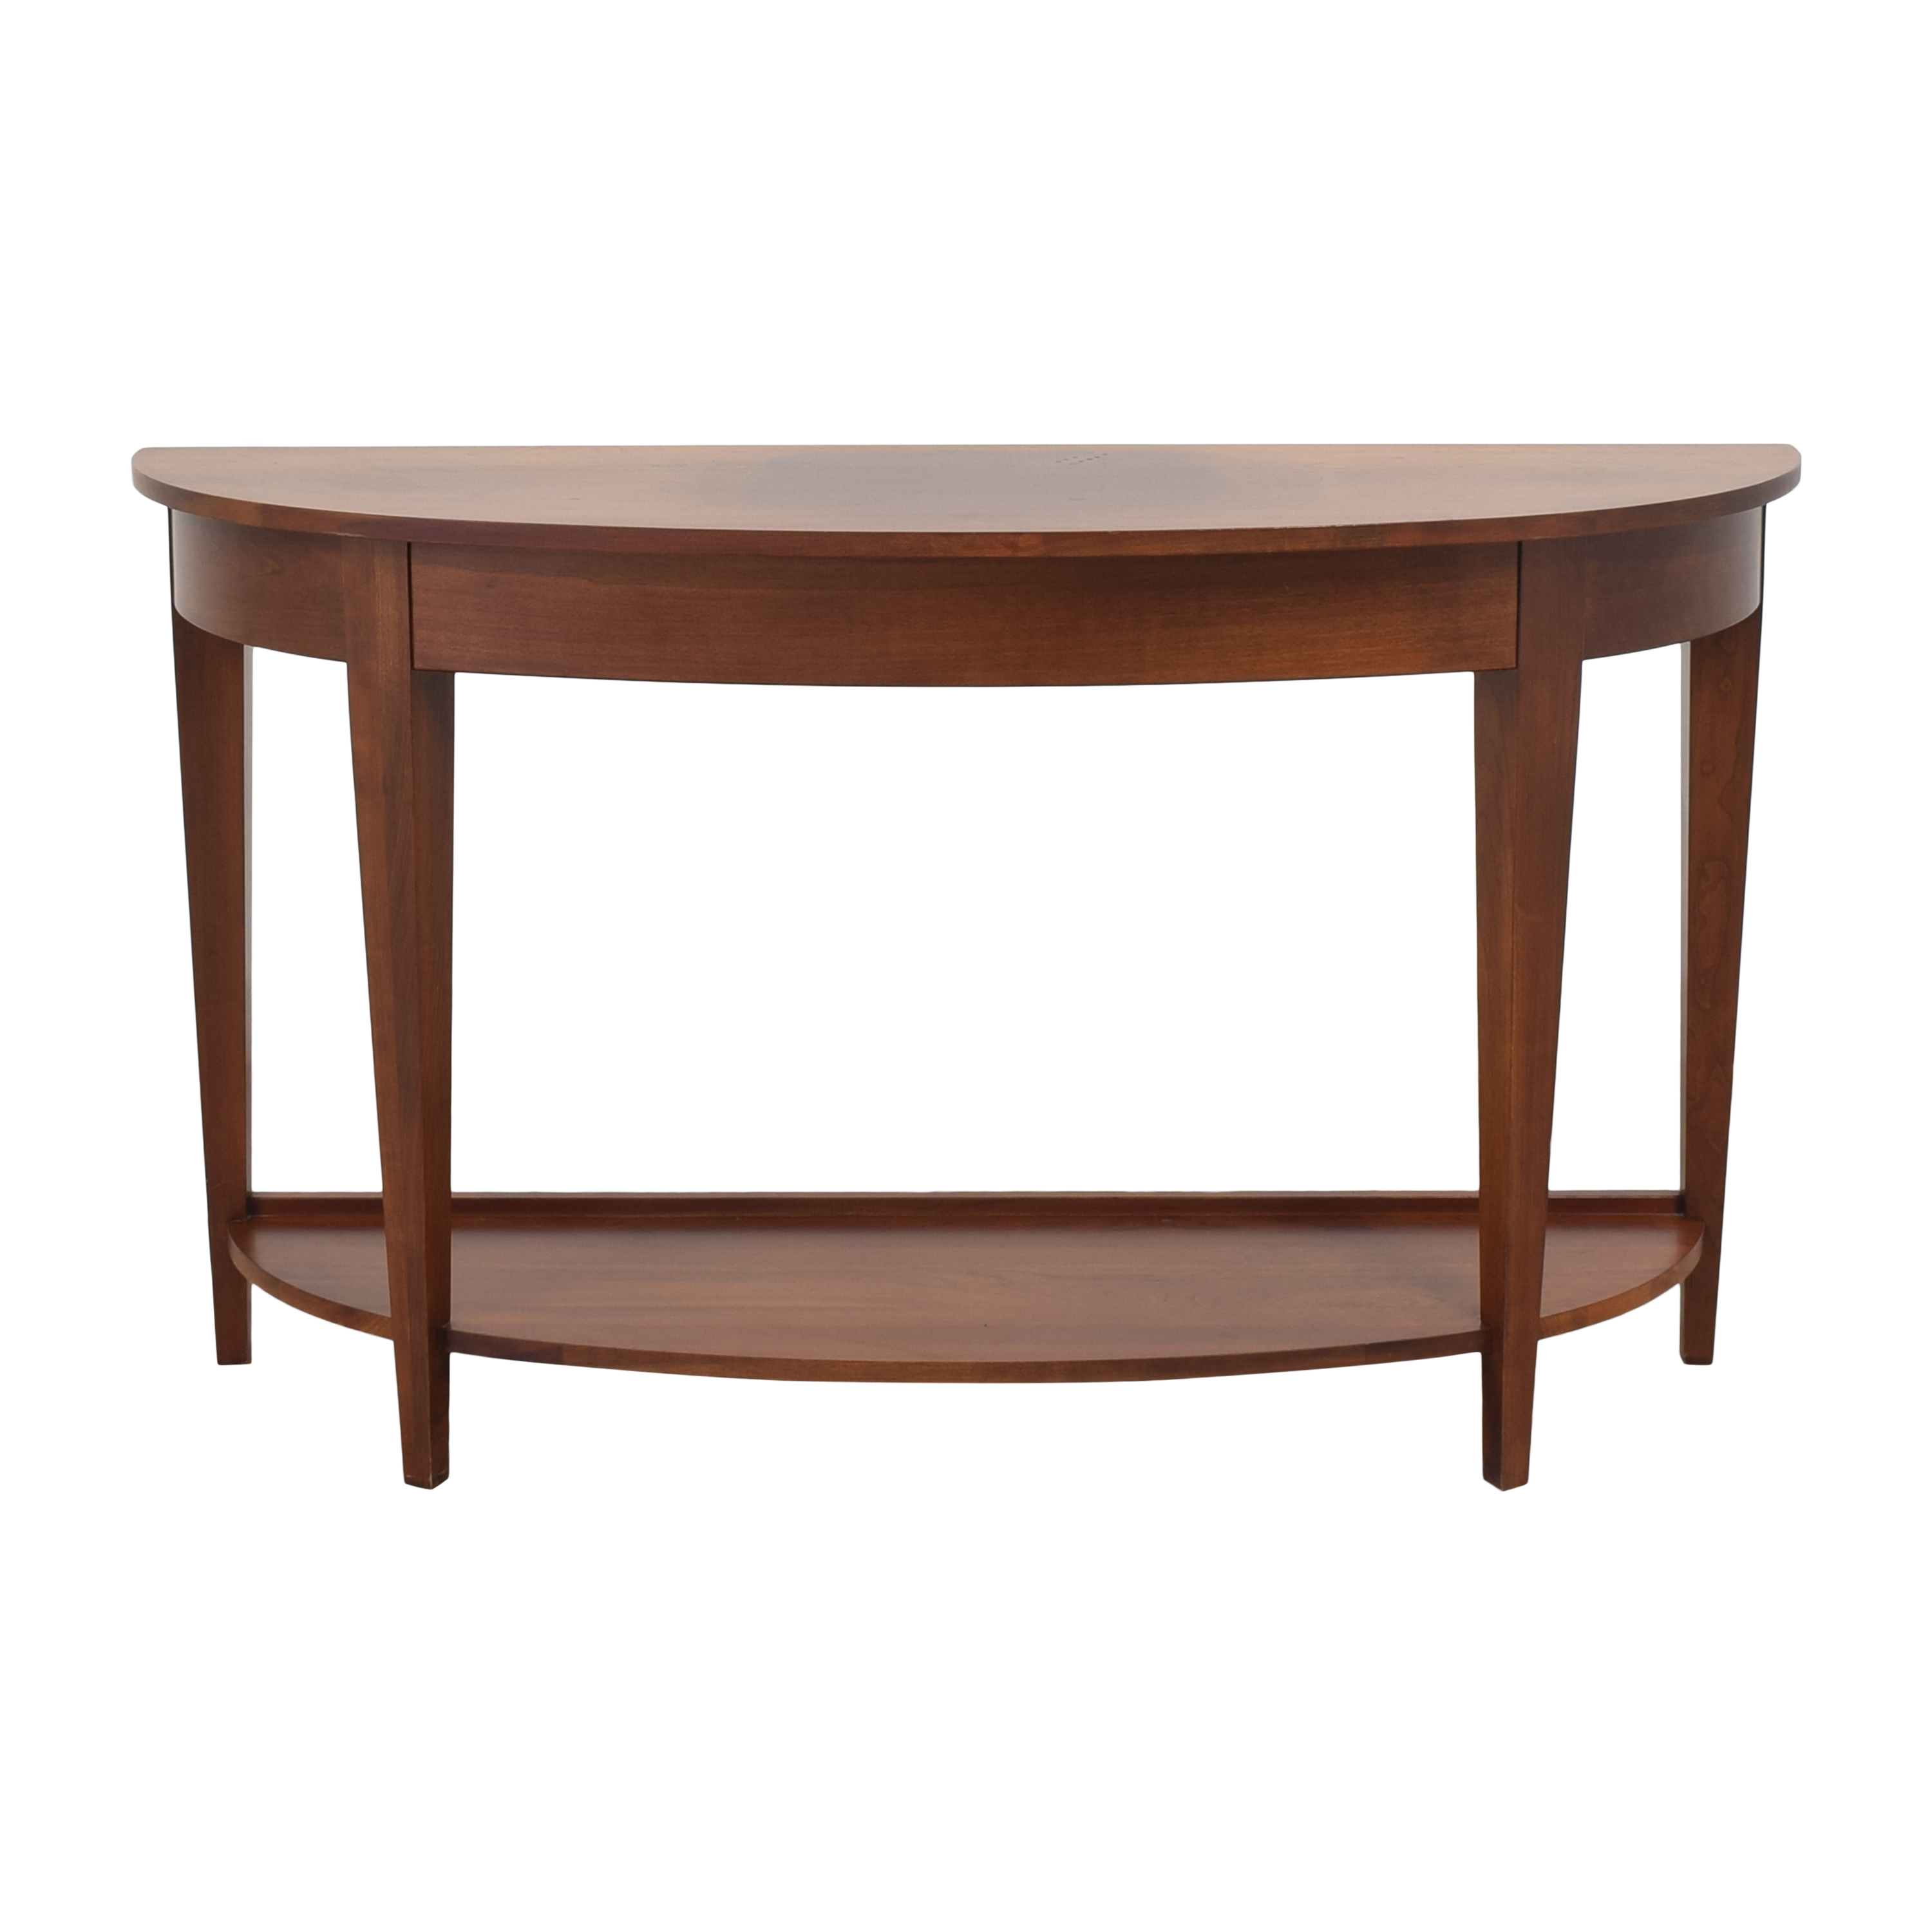 Ethan Allen Ethan Allen American Impressions Demilune Sofa Table second hand